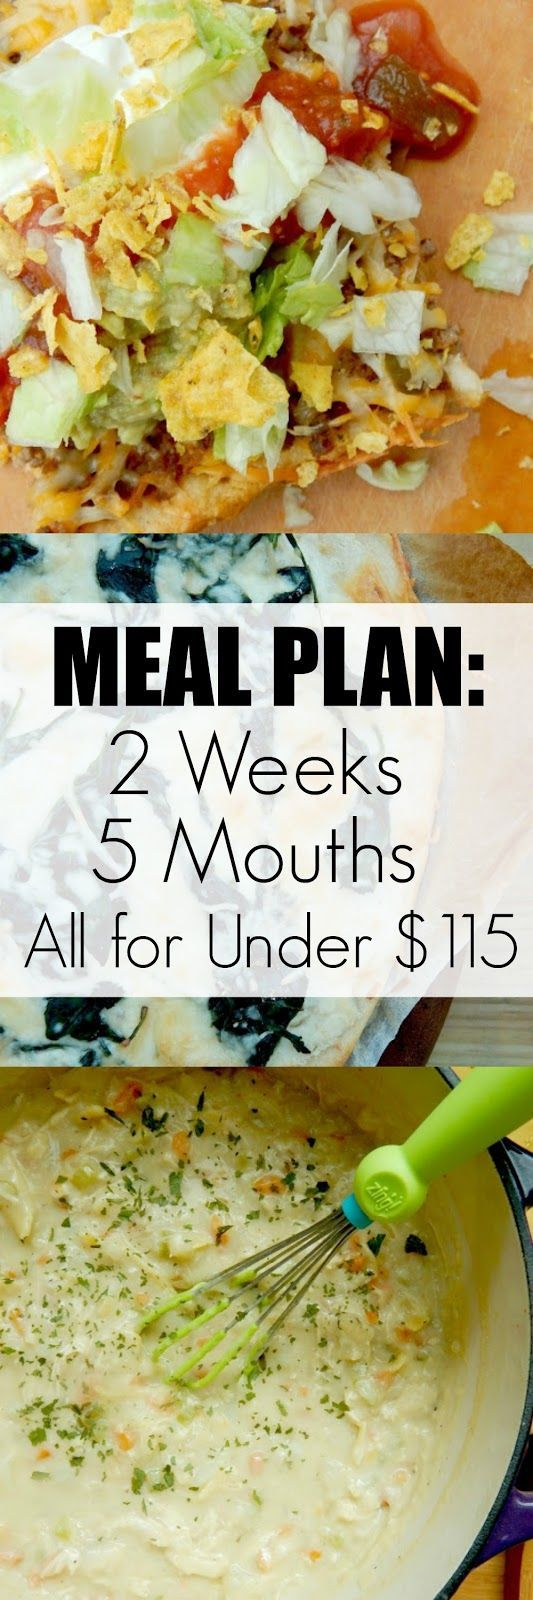 Meal Plan: 2 Weeks, 5 Mouths, All for Under $115...a superb plan for a hungry family! Plenty of leftovers for lunches and extras that will stock your fridge and pantry.